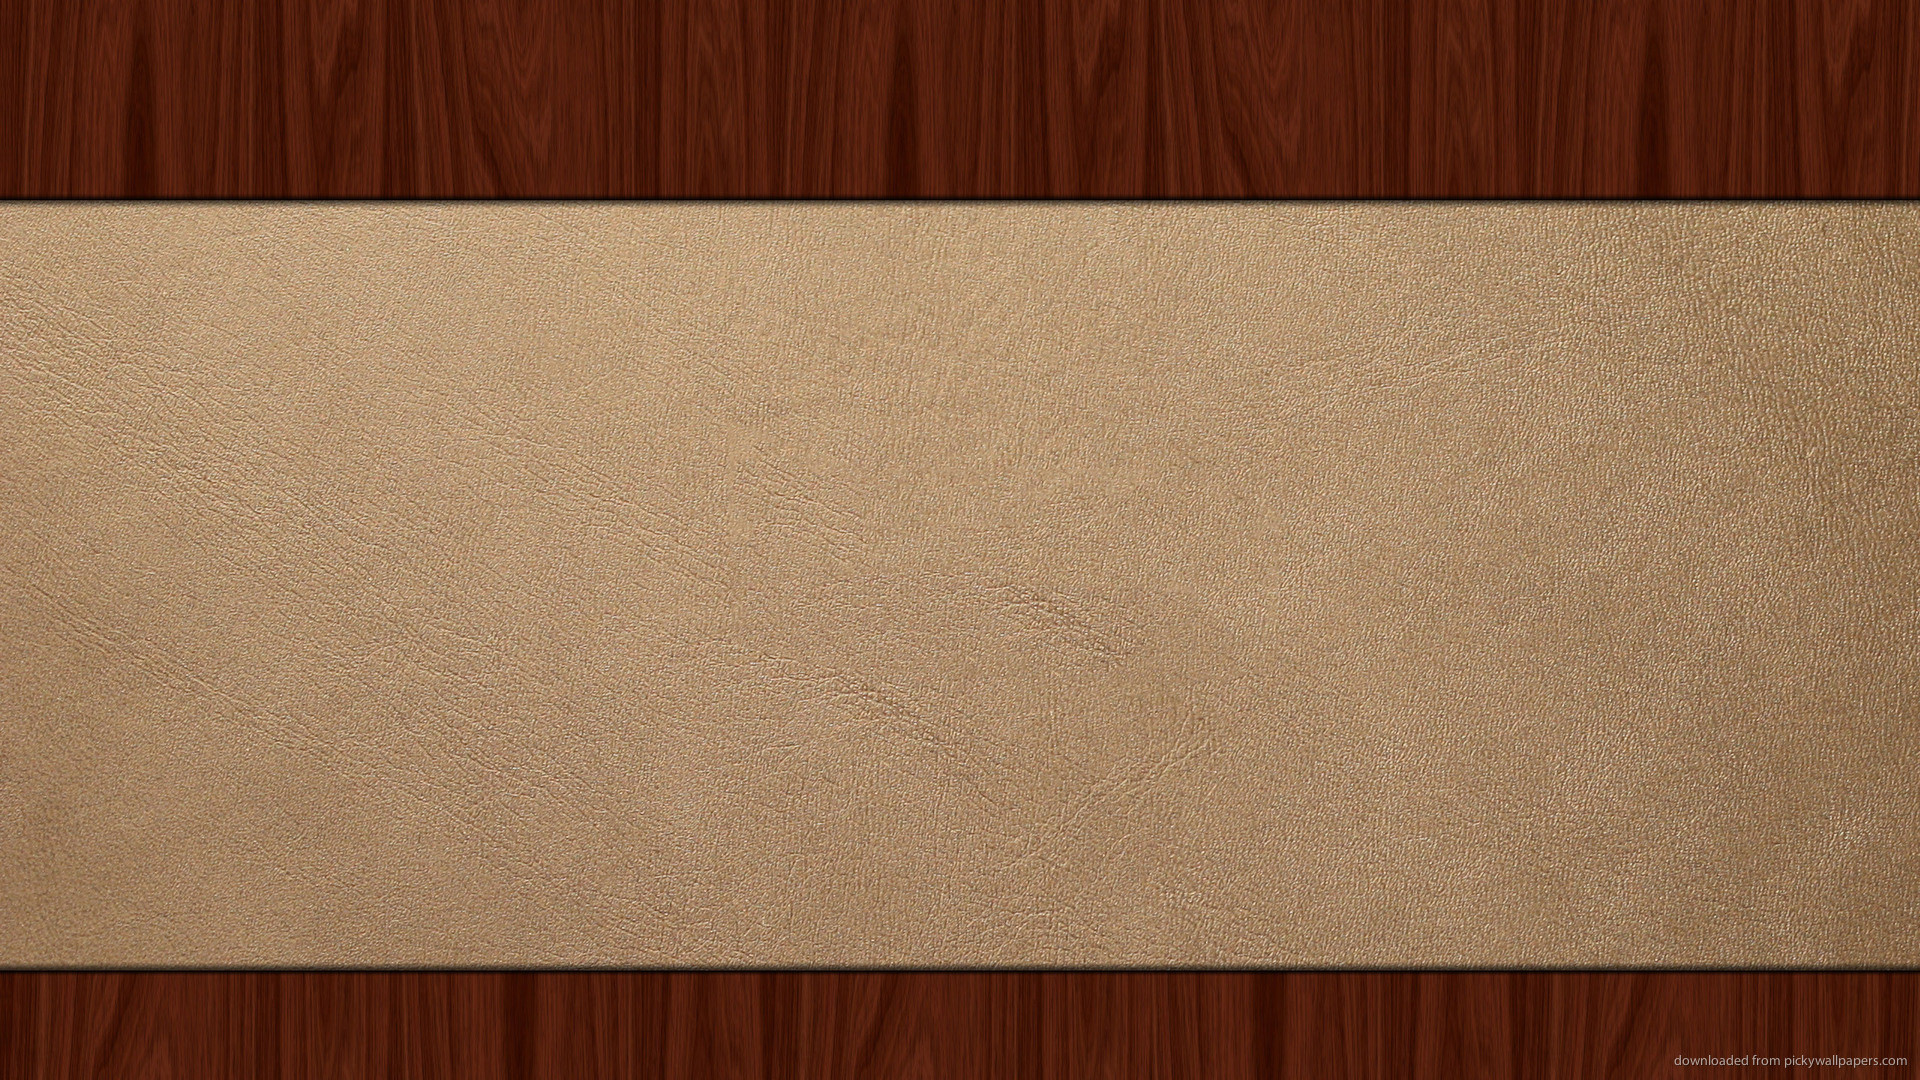 Light Leather On Wood for 1920×1080